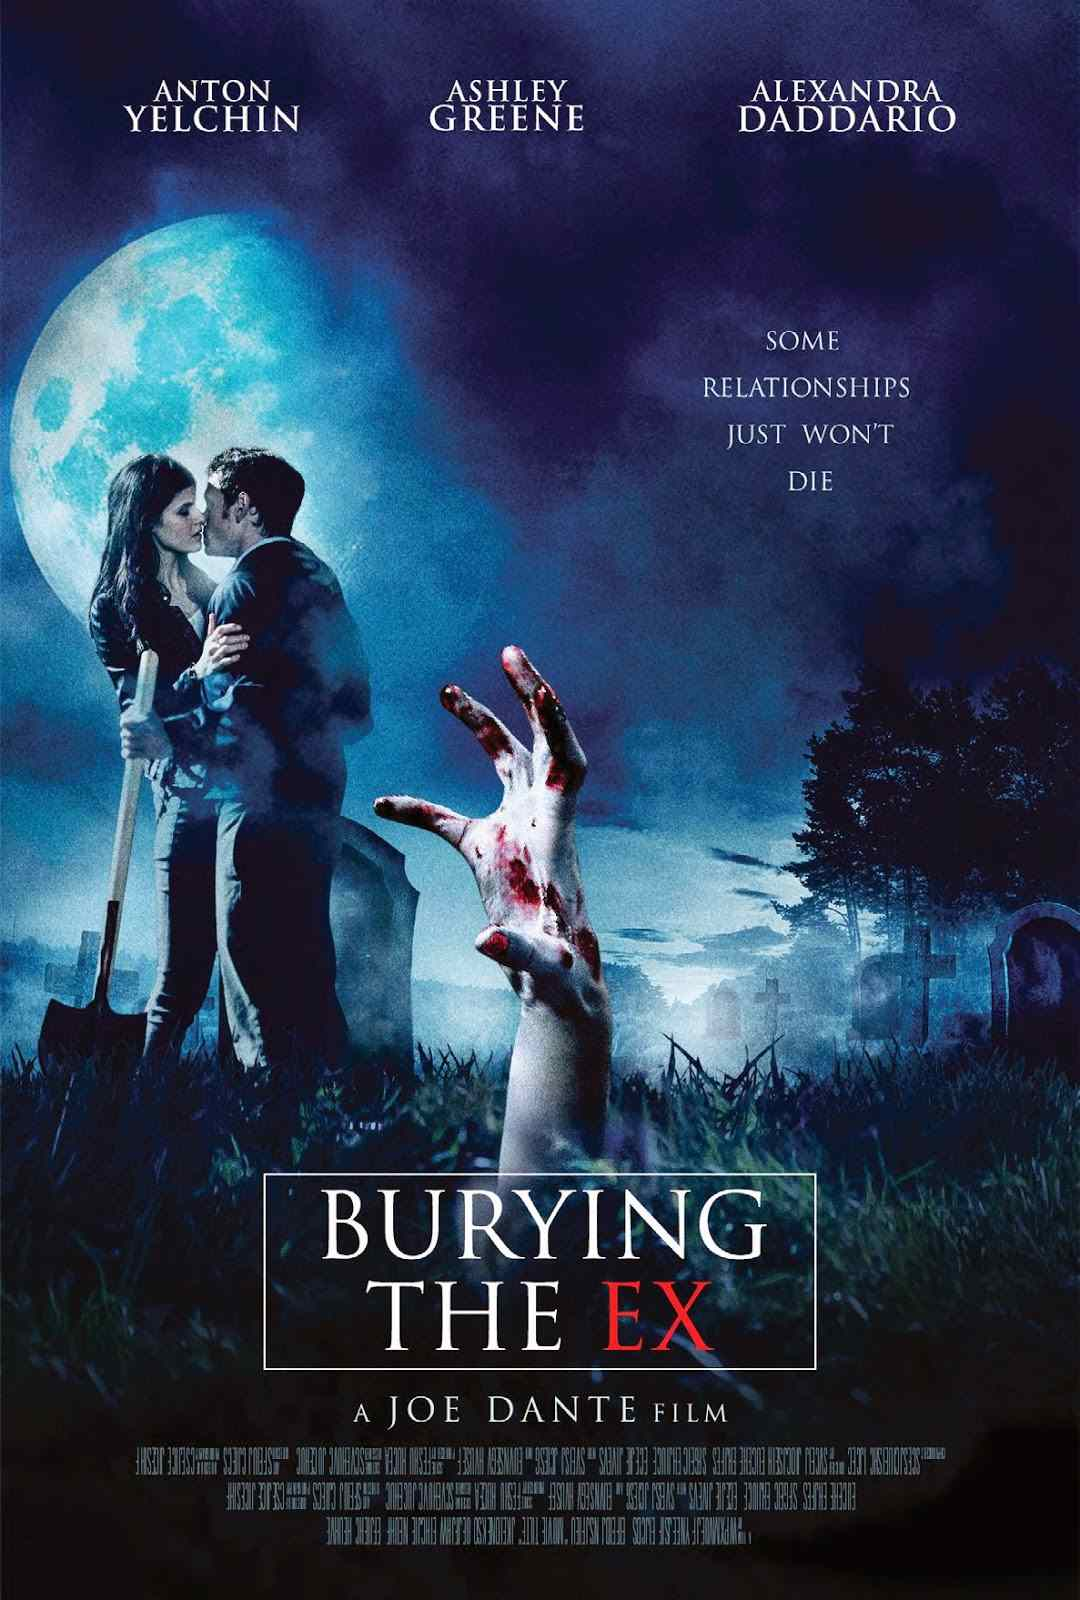 Poster for Joe Dante's Burying the Ex.